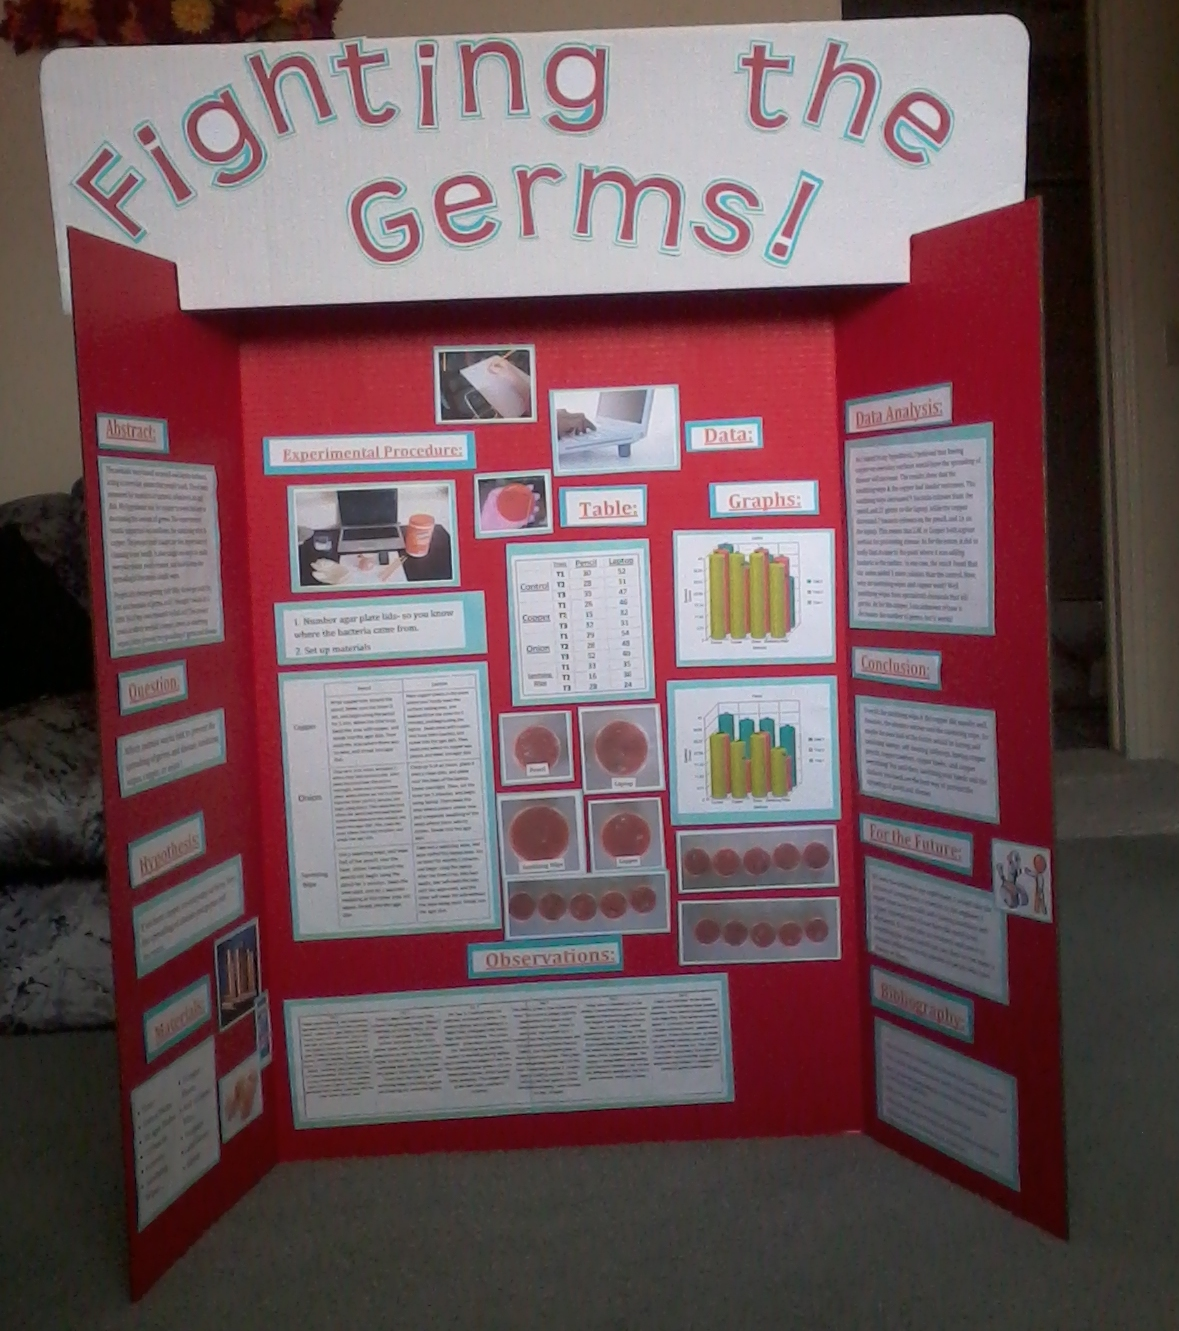 fighting the germs! | science project | education